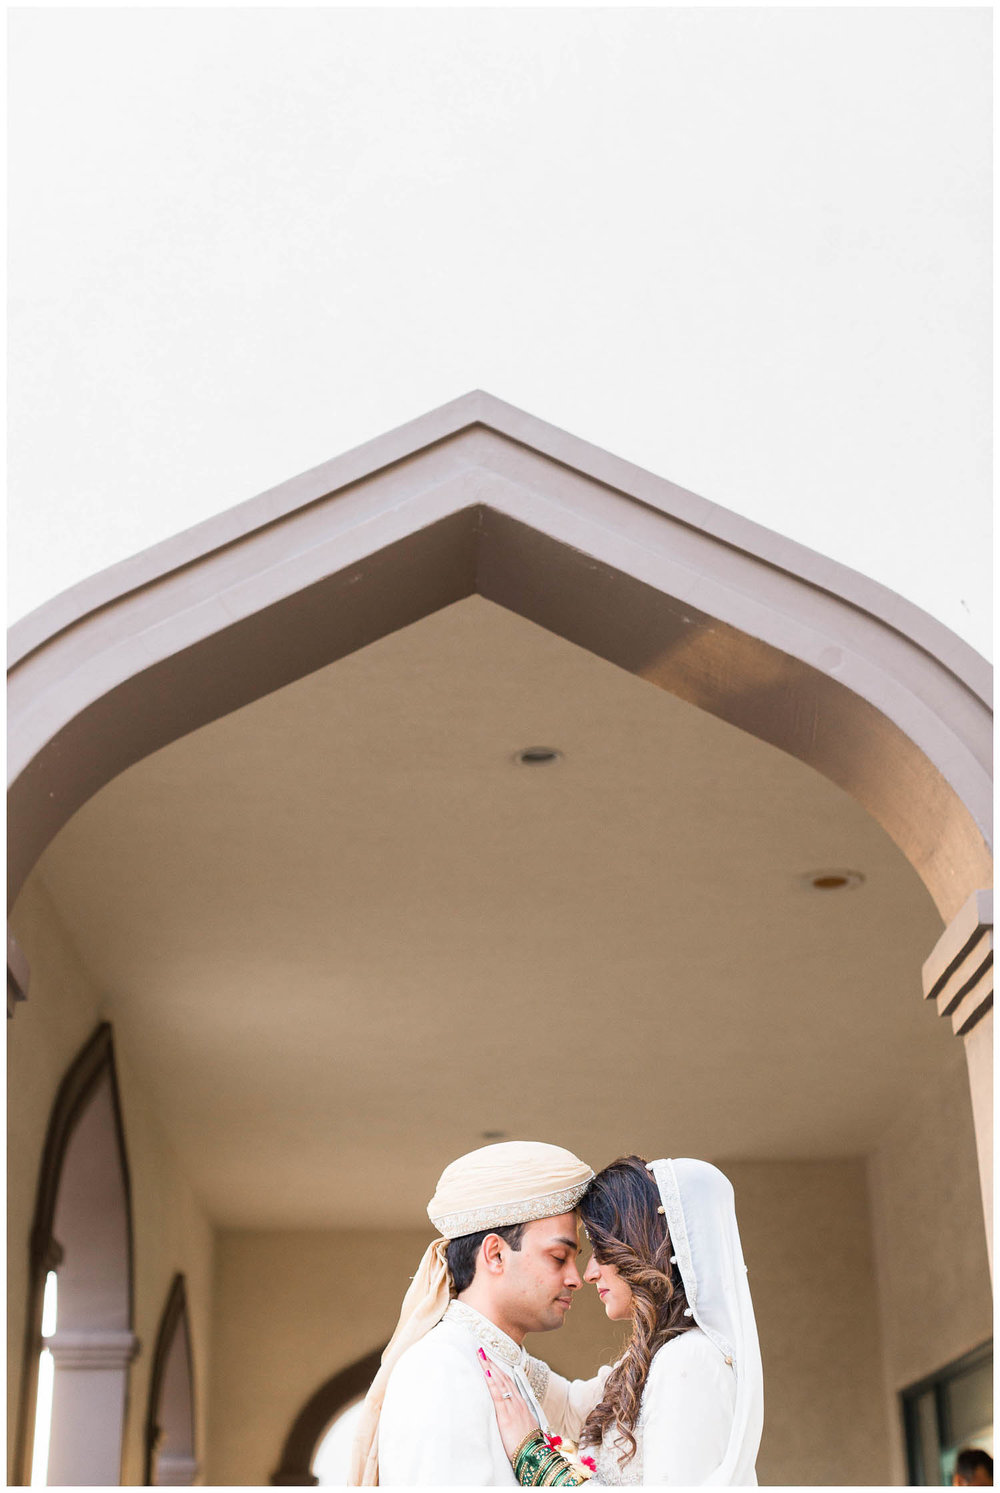 Nikkah-ISNA-Toronto-Mississauga-GTA-Pakistani-Muslim-Female-Wedding-Photographer_0029.jpg